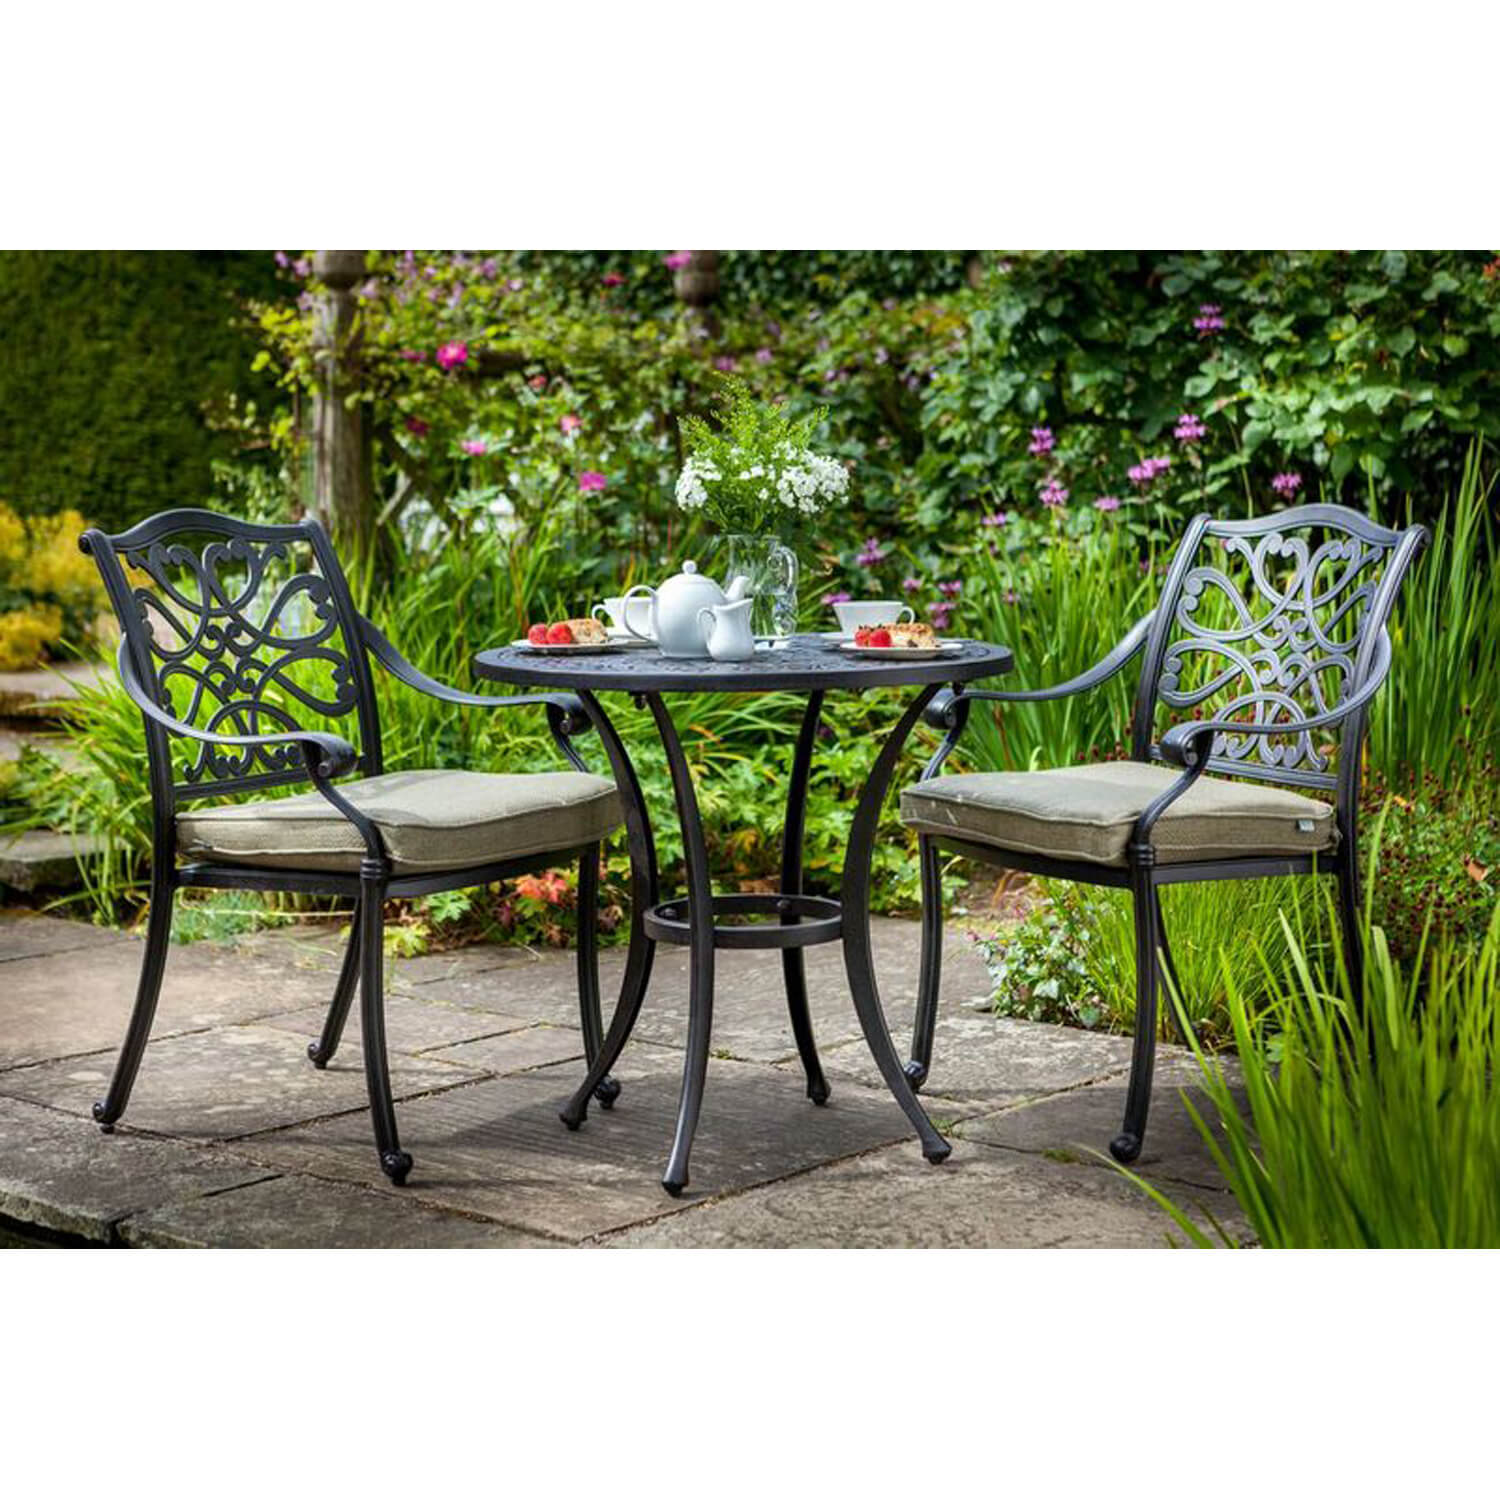 hartman amalfi outdoor bistro set. Black Bedroom Furniture Sets. Home Design Ideas